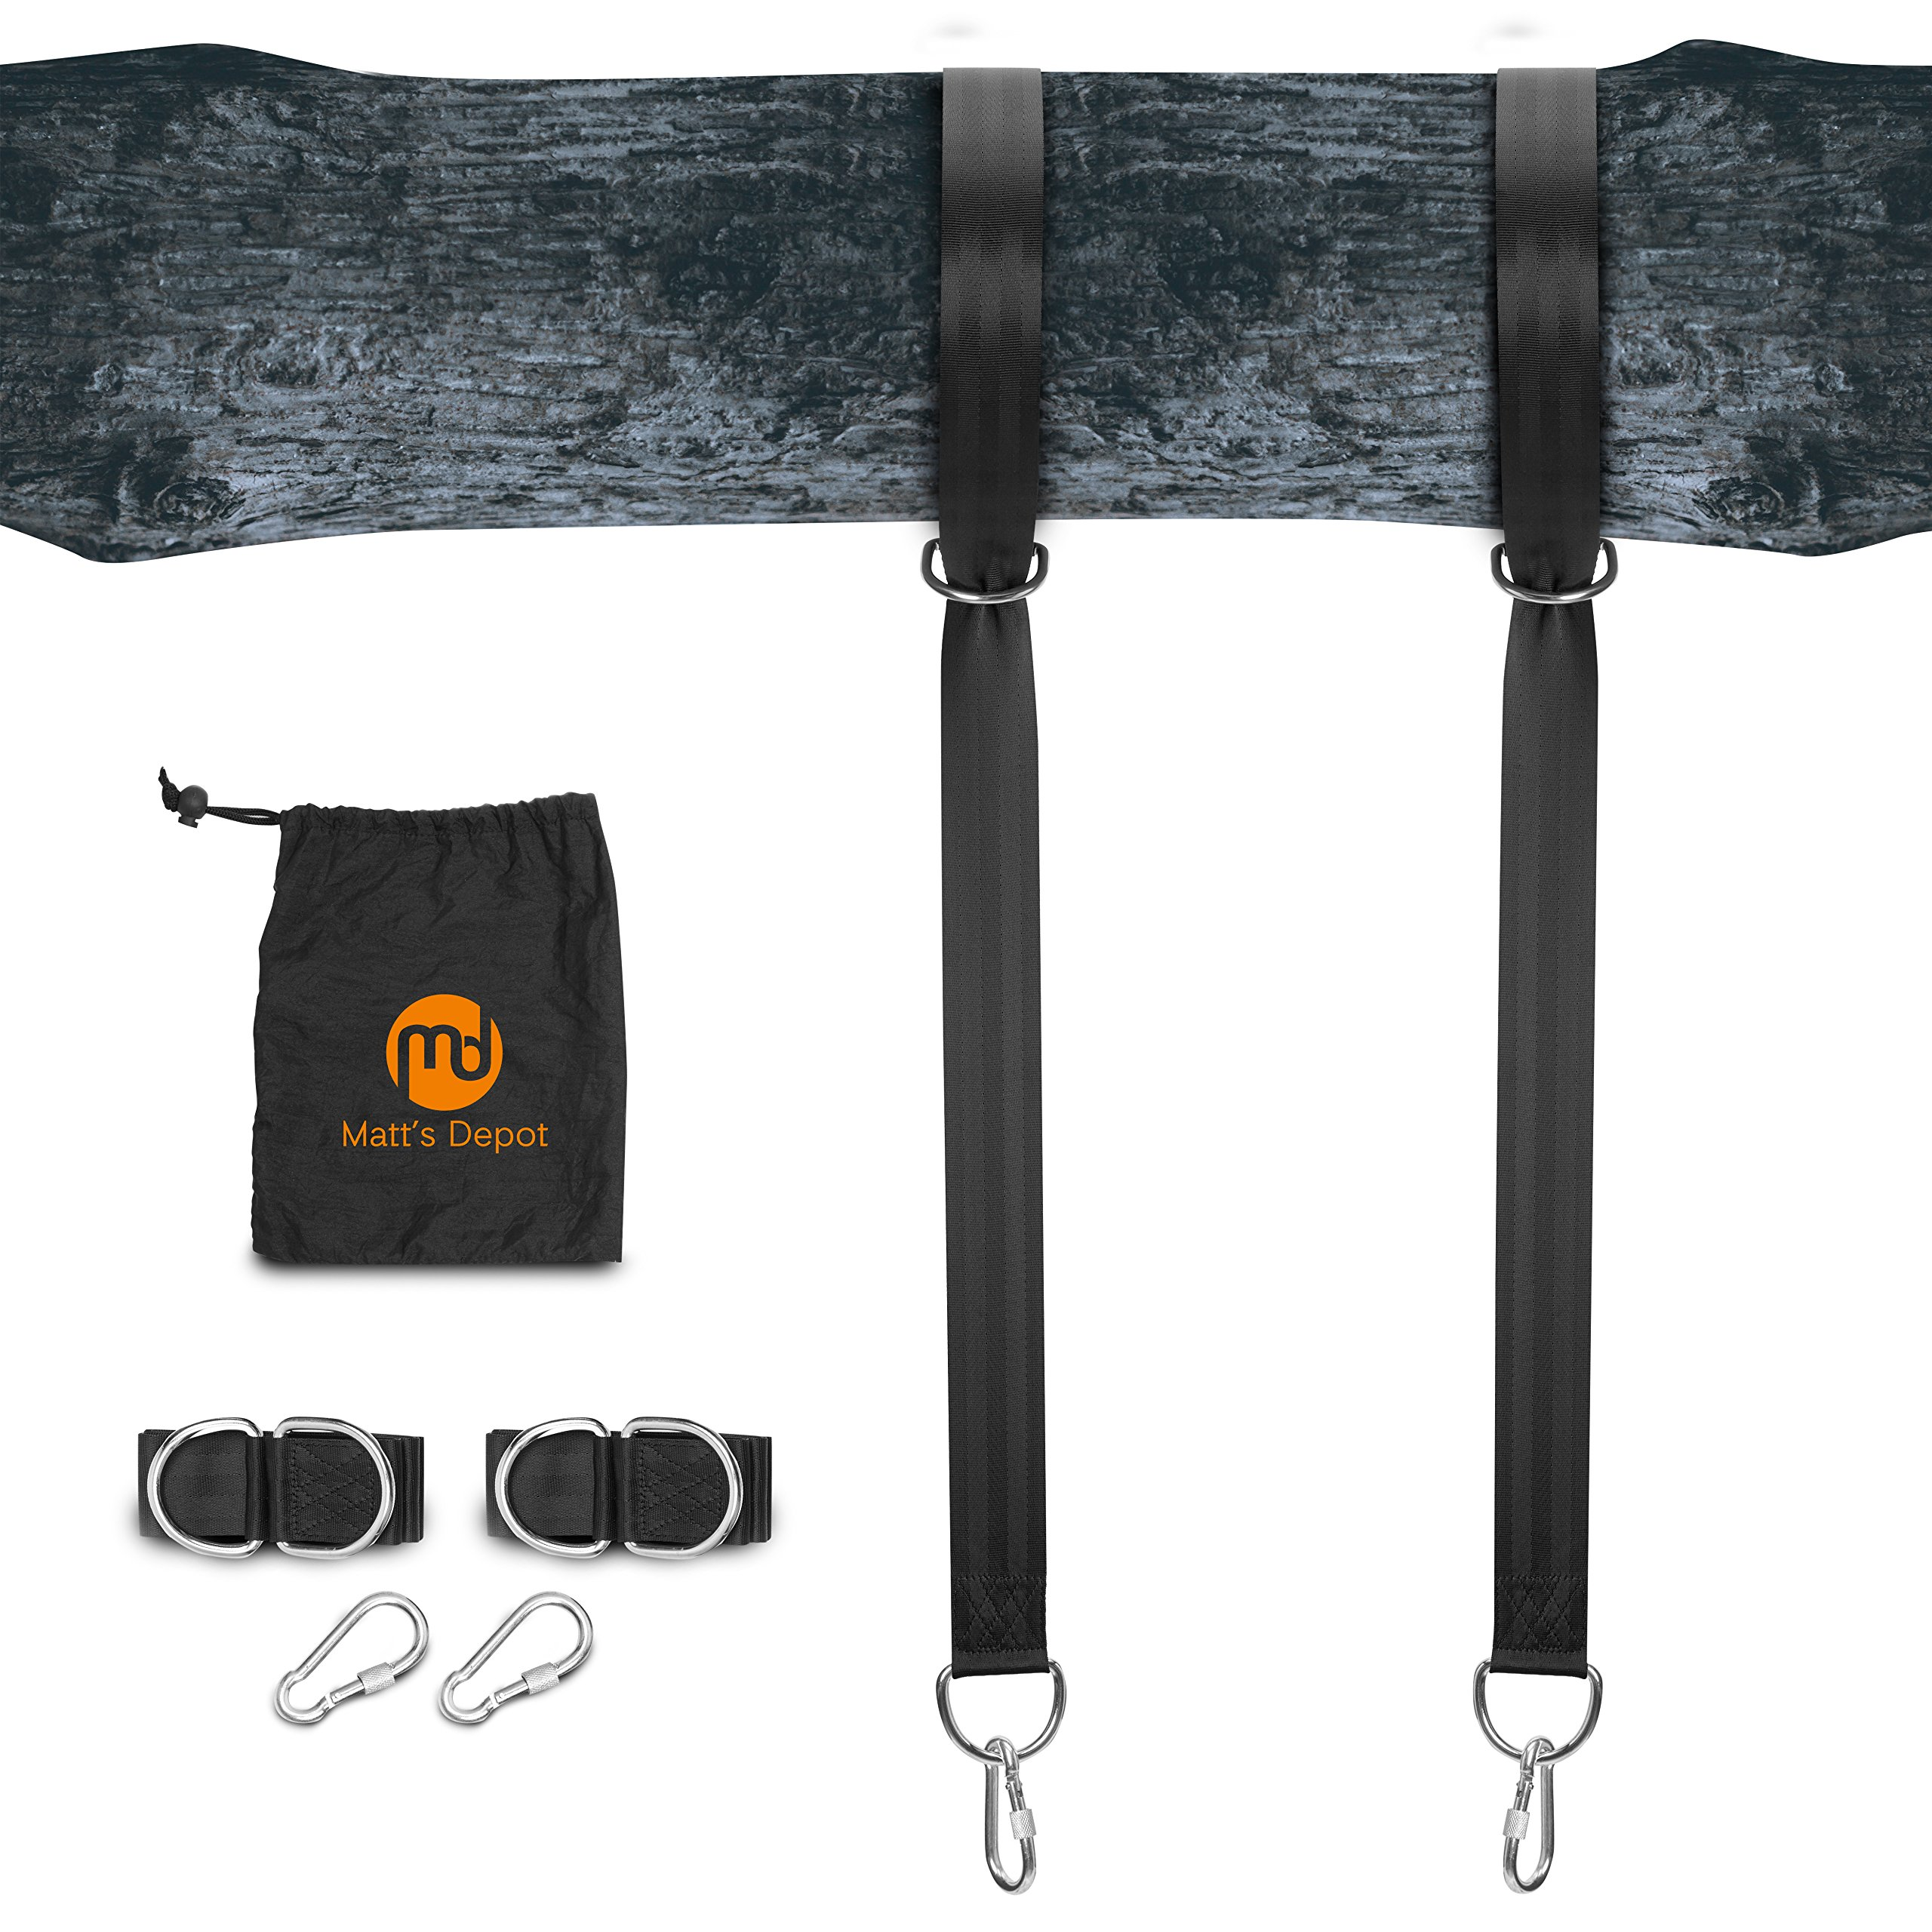 Matt's Depot Tree Swing Hanging Kit Straps - Set of 2 5ft Long Straps with 2 Safe Lock Carabiners - Extra Strong Hold 2000lbs - Easy Installation for Swings and Hammocks